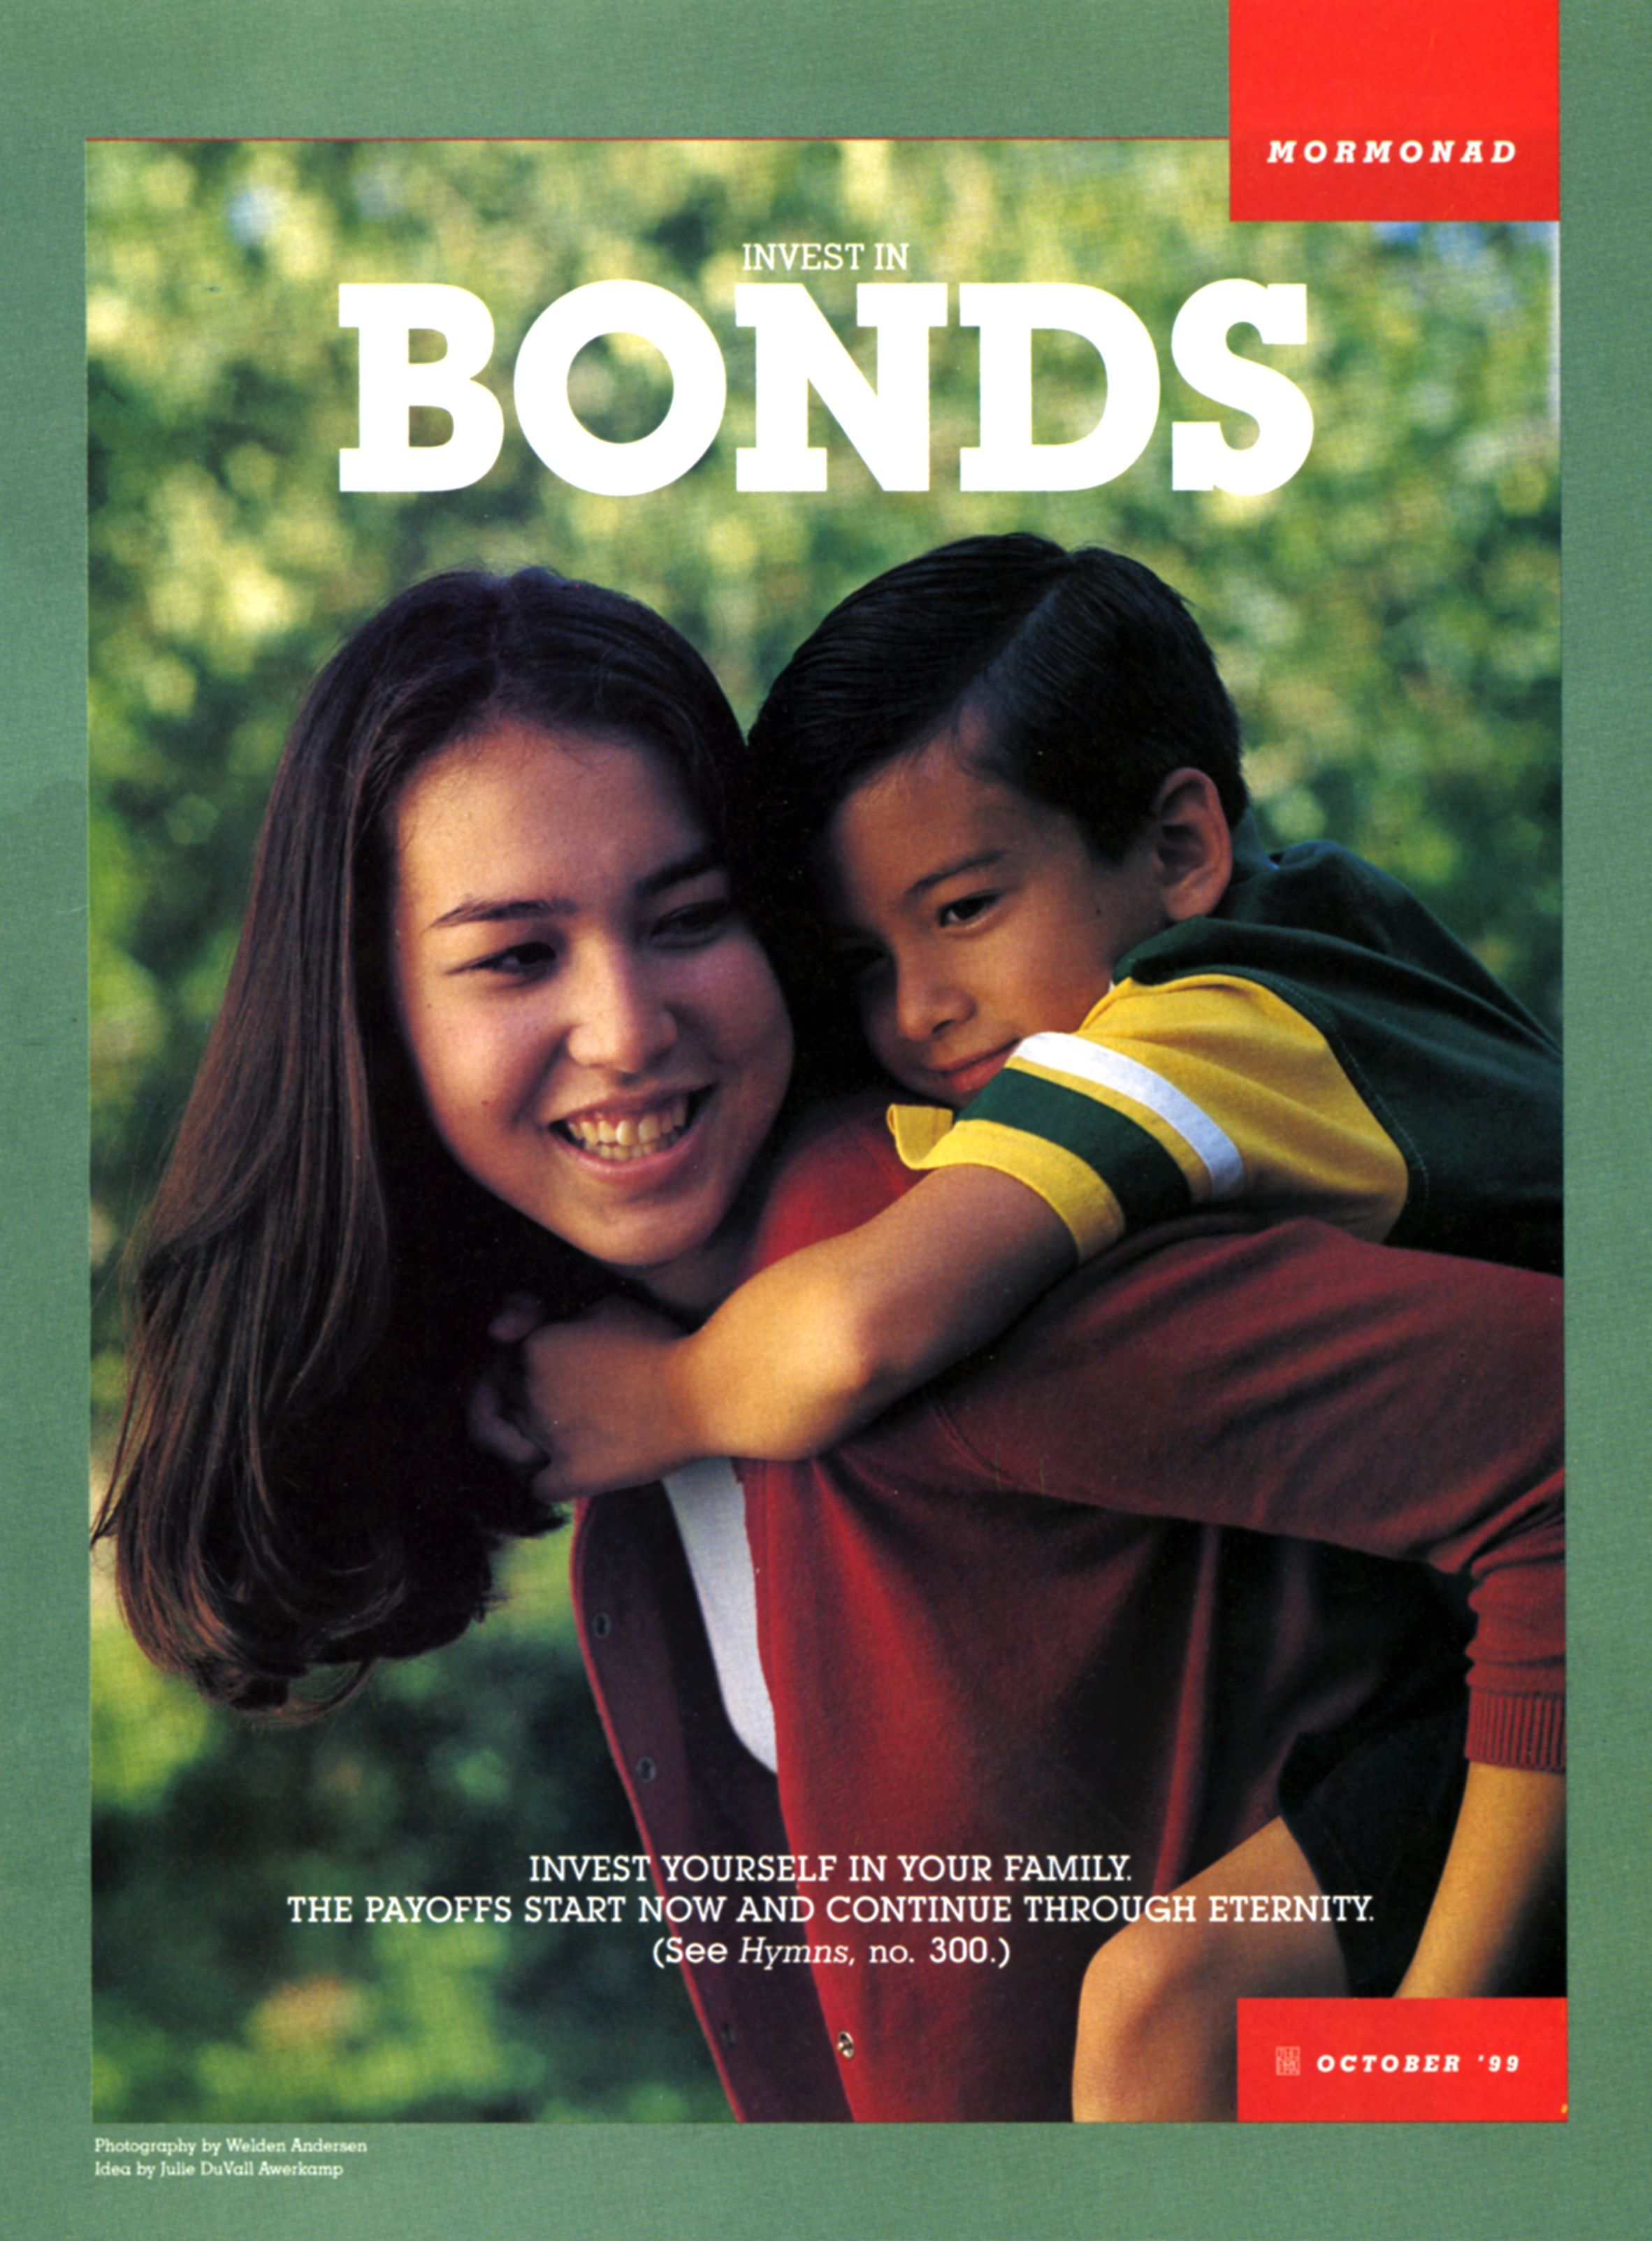 Invest in Bonds. Invest yourself in your family. The payoffs start now and continue through eternity. (See Hymns, no. 300.) Oct. 1999